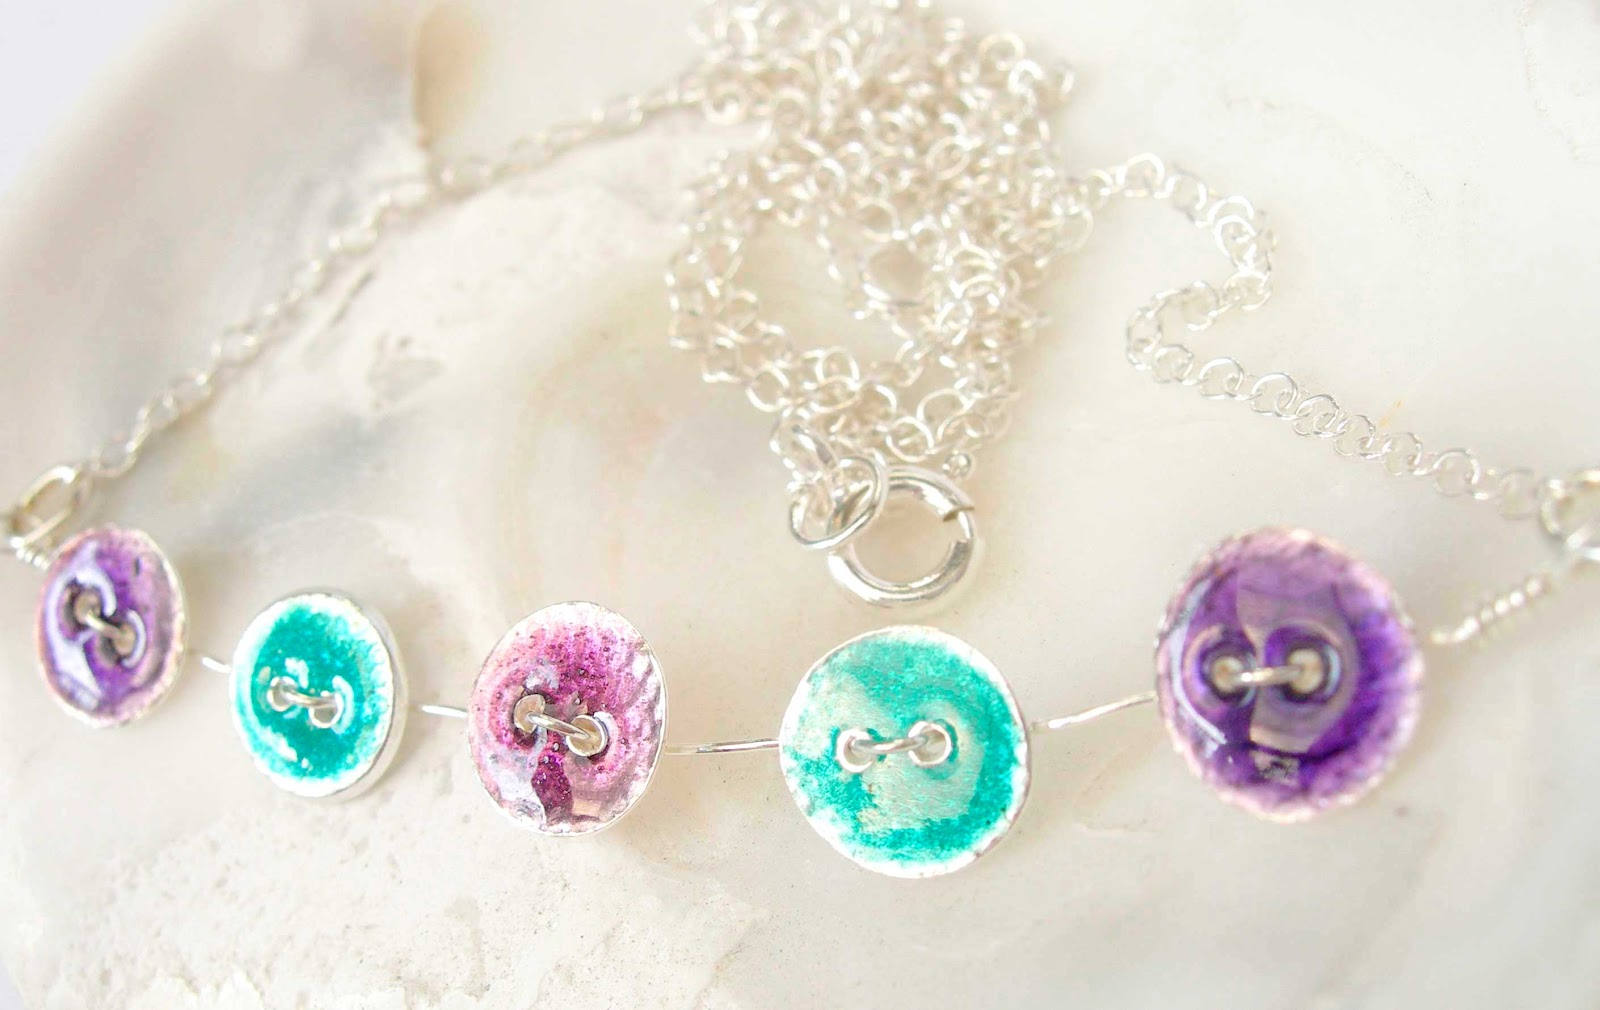 Tiny Silver Button Necklace in Purples and Green Glass Enamels